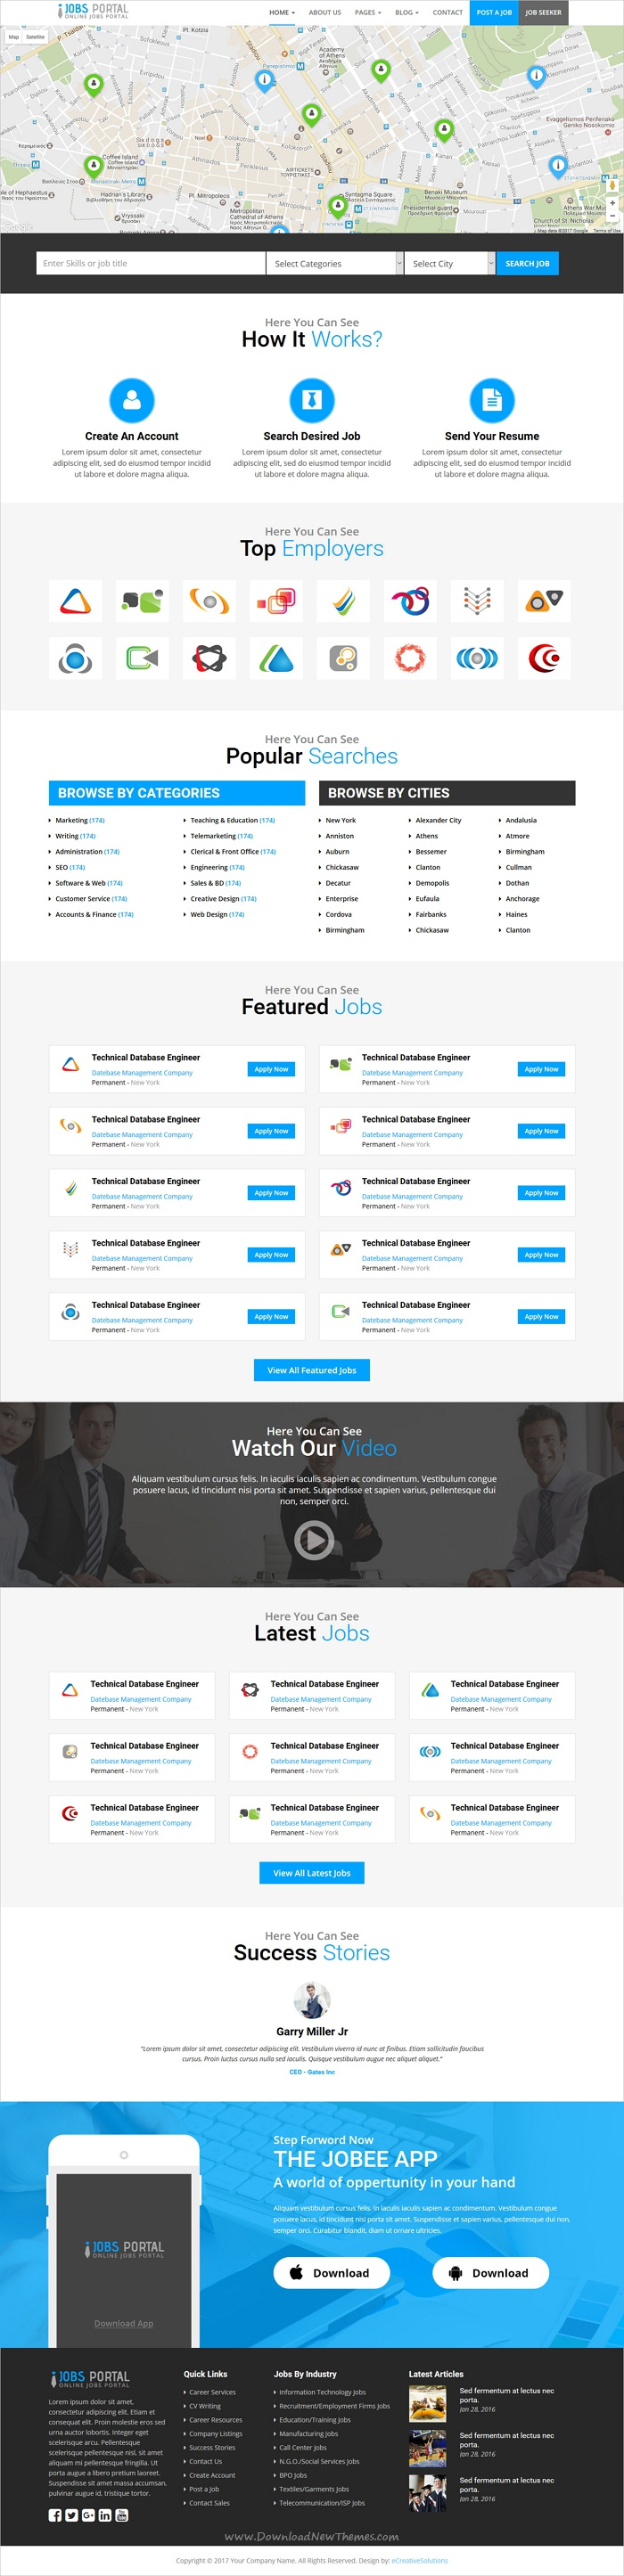 Jobs Portal - Online Jobs Search Template | Online job search ...